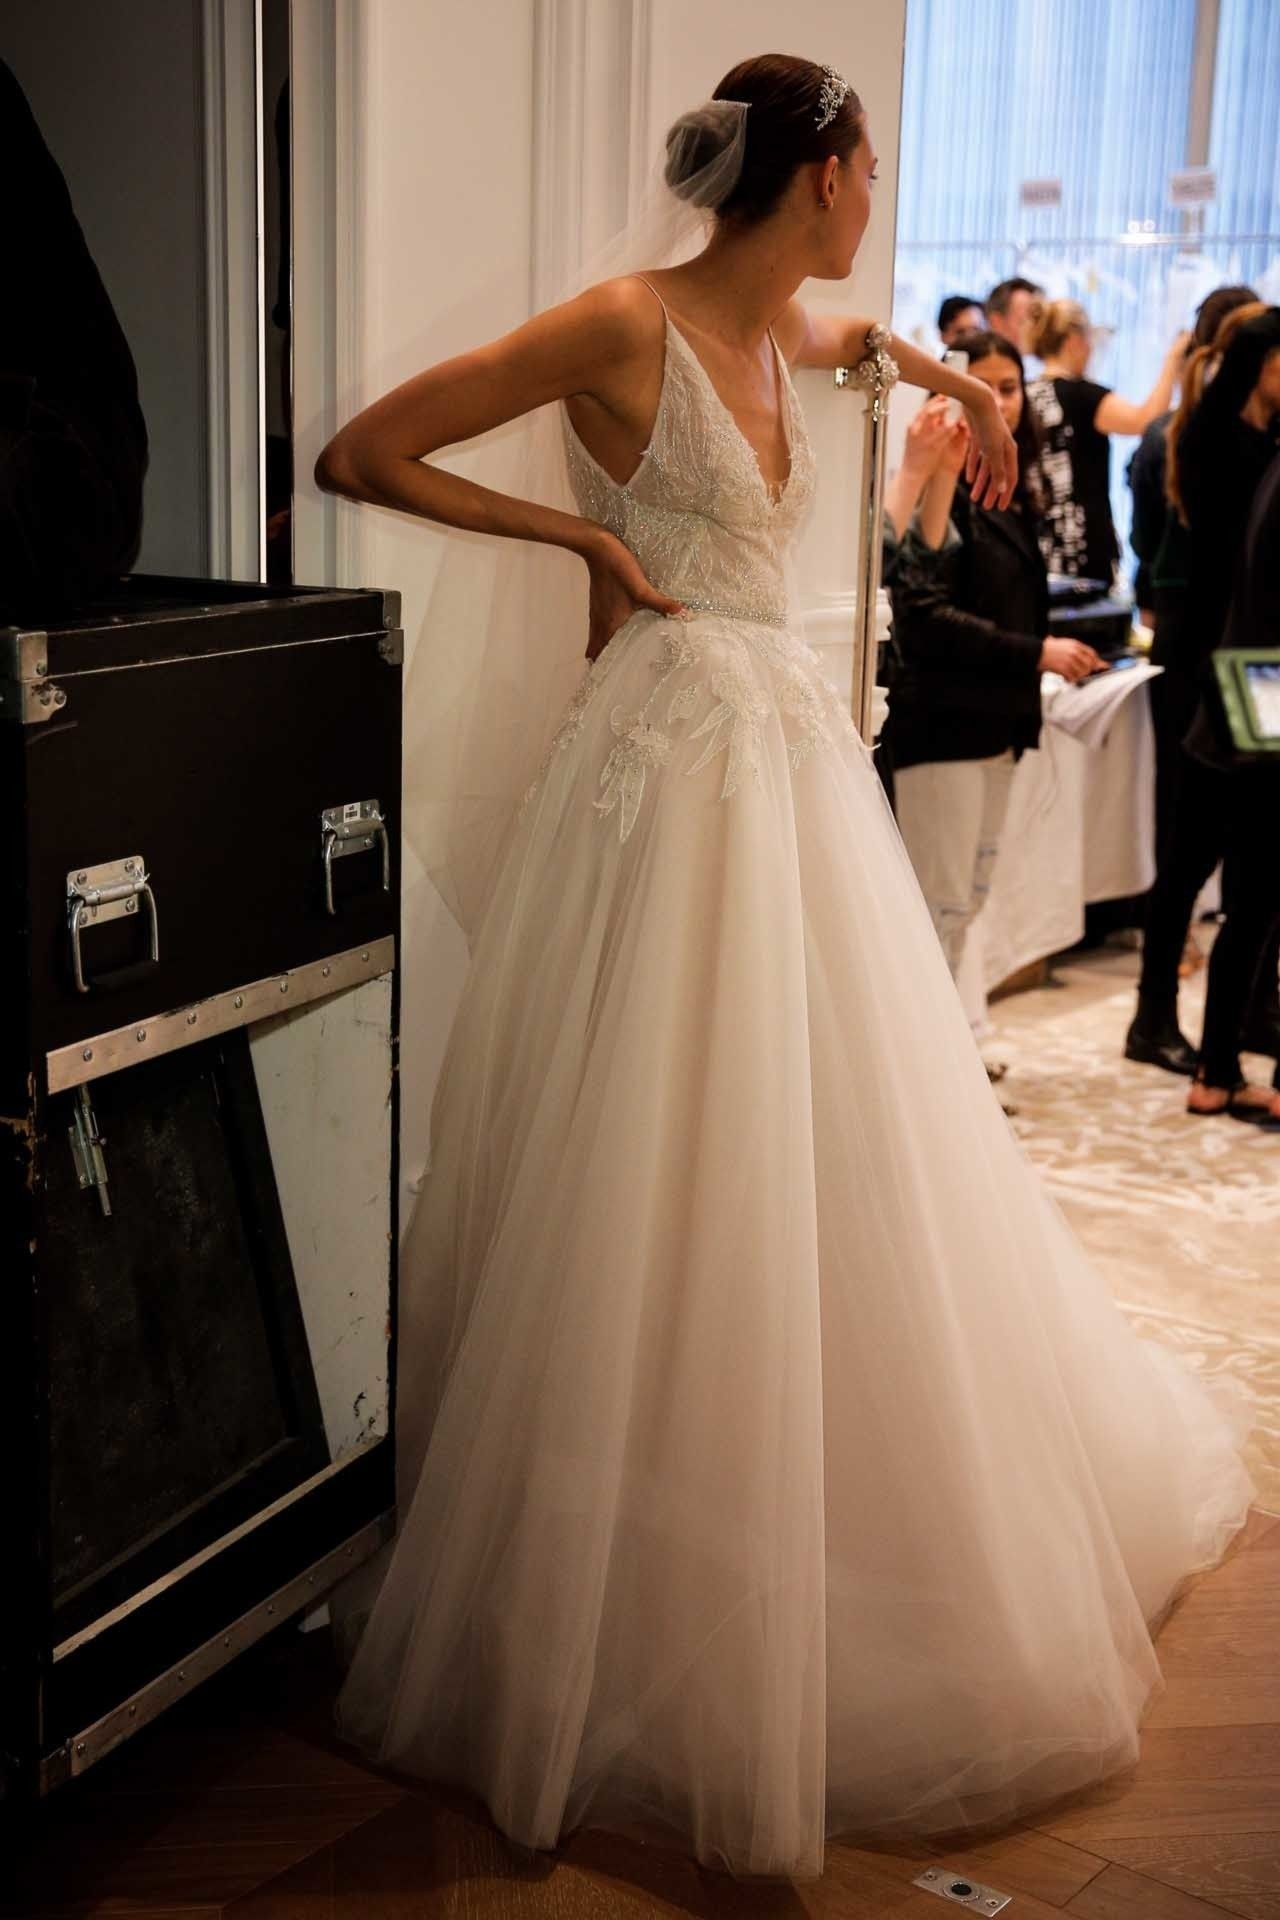 11 wedding dresses you wouldnt say no to from bridal fashion week 11 wedding dresses you wouldnt say no to from bridal fashion week spring 2016 vogue australia monique lhuillier bridal dress ombrellifo Image collections